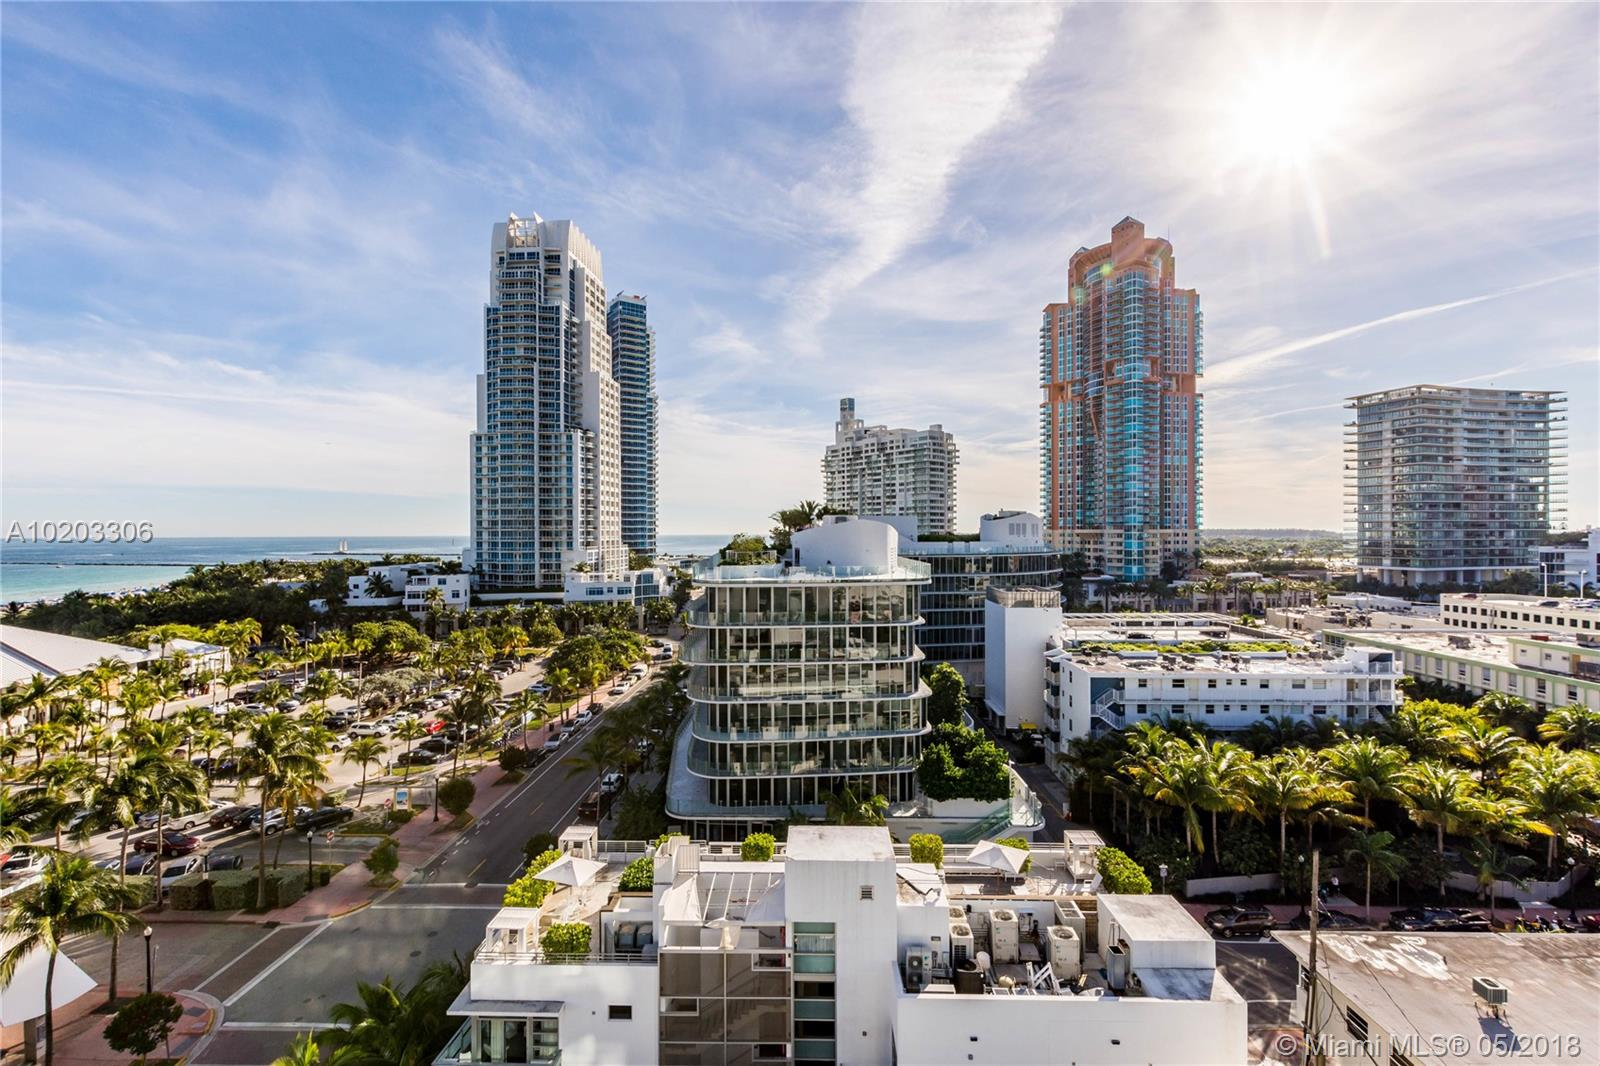 120 Ocean Drive #900, Miami Beach FL, 33139 | MLS ... | 1600 x 1066 jpeg 282kB